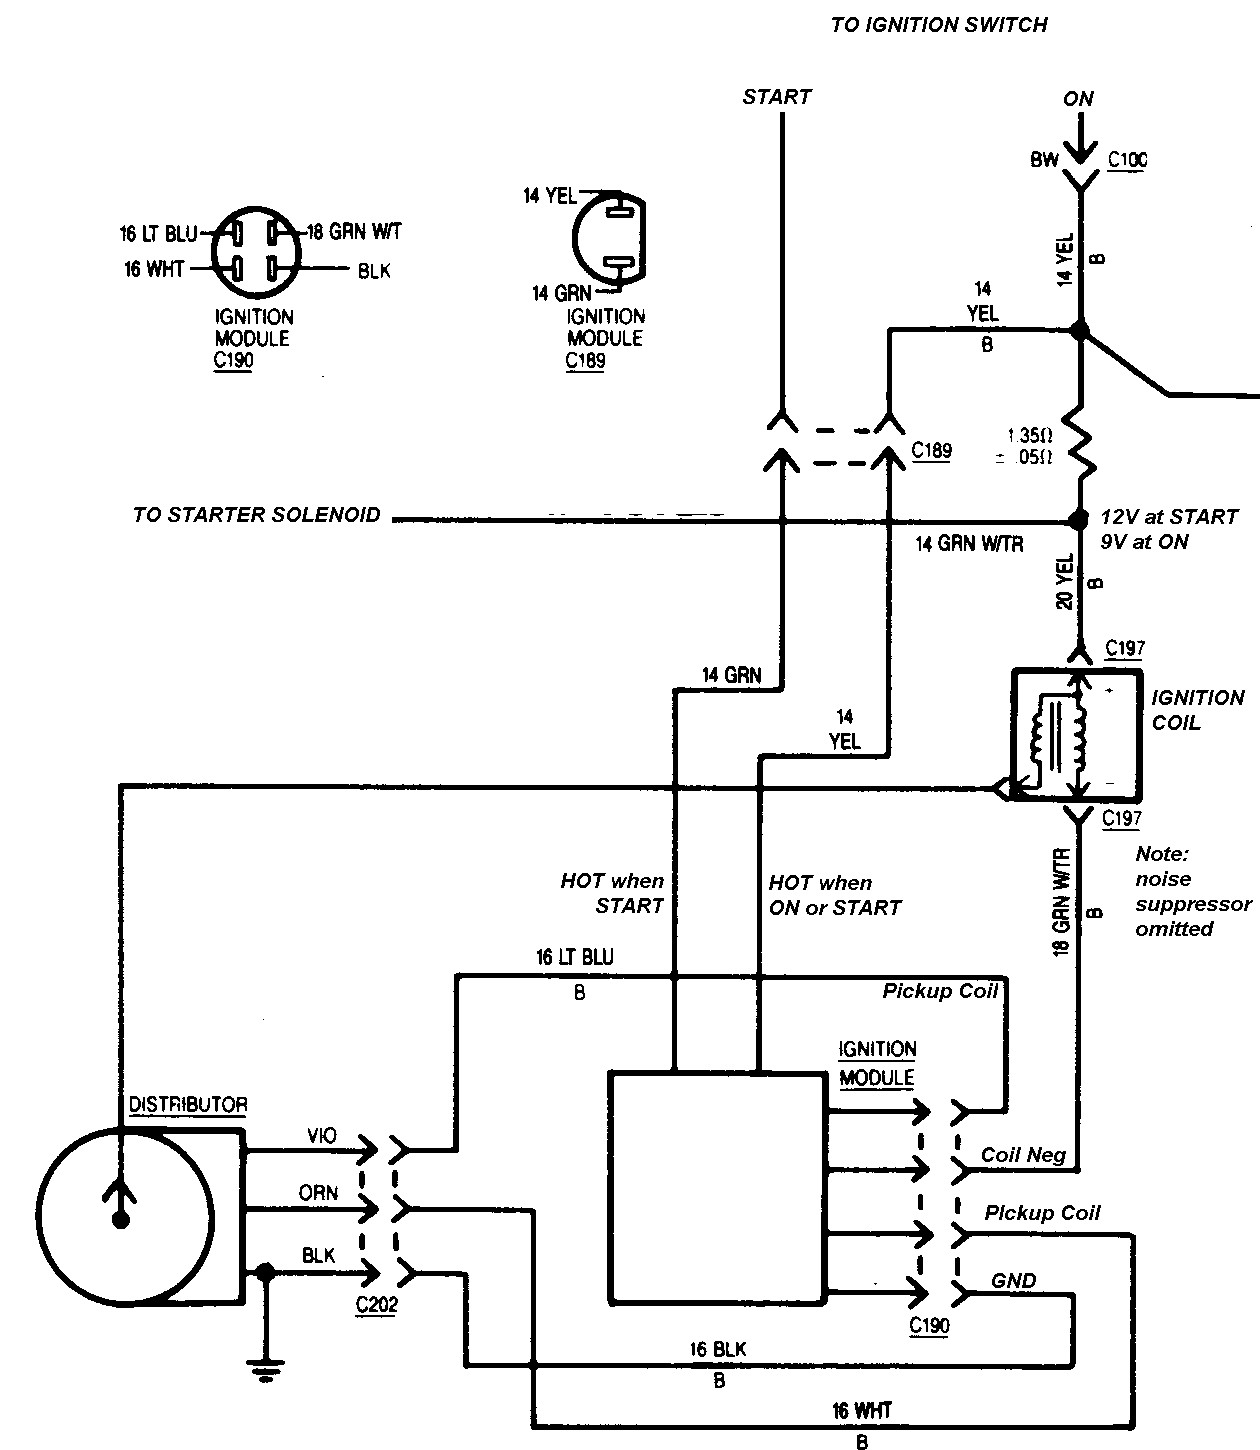 Ign_wiring tbi wiring harness diagram 73 87 wiring harness \u2022 free wiring  at bayanpartner.co